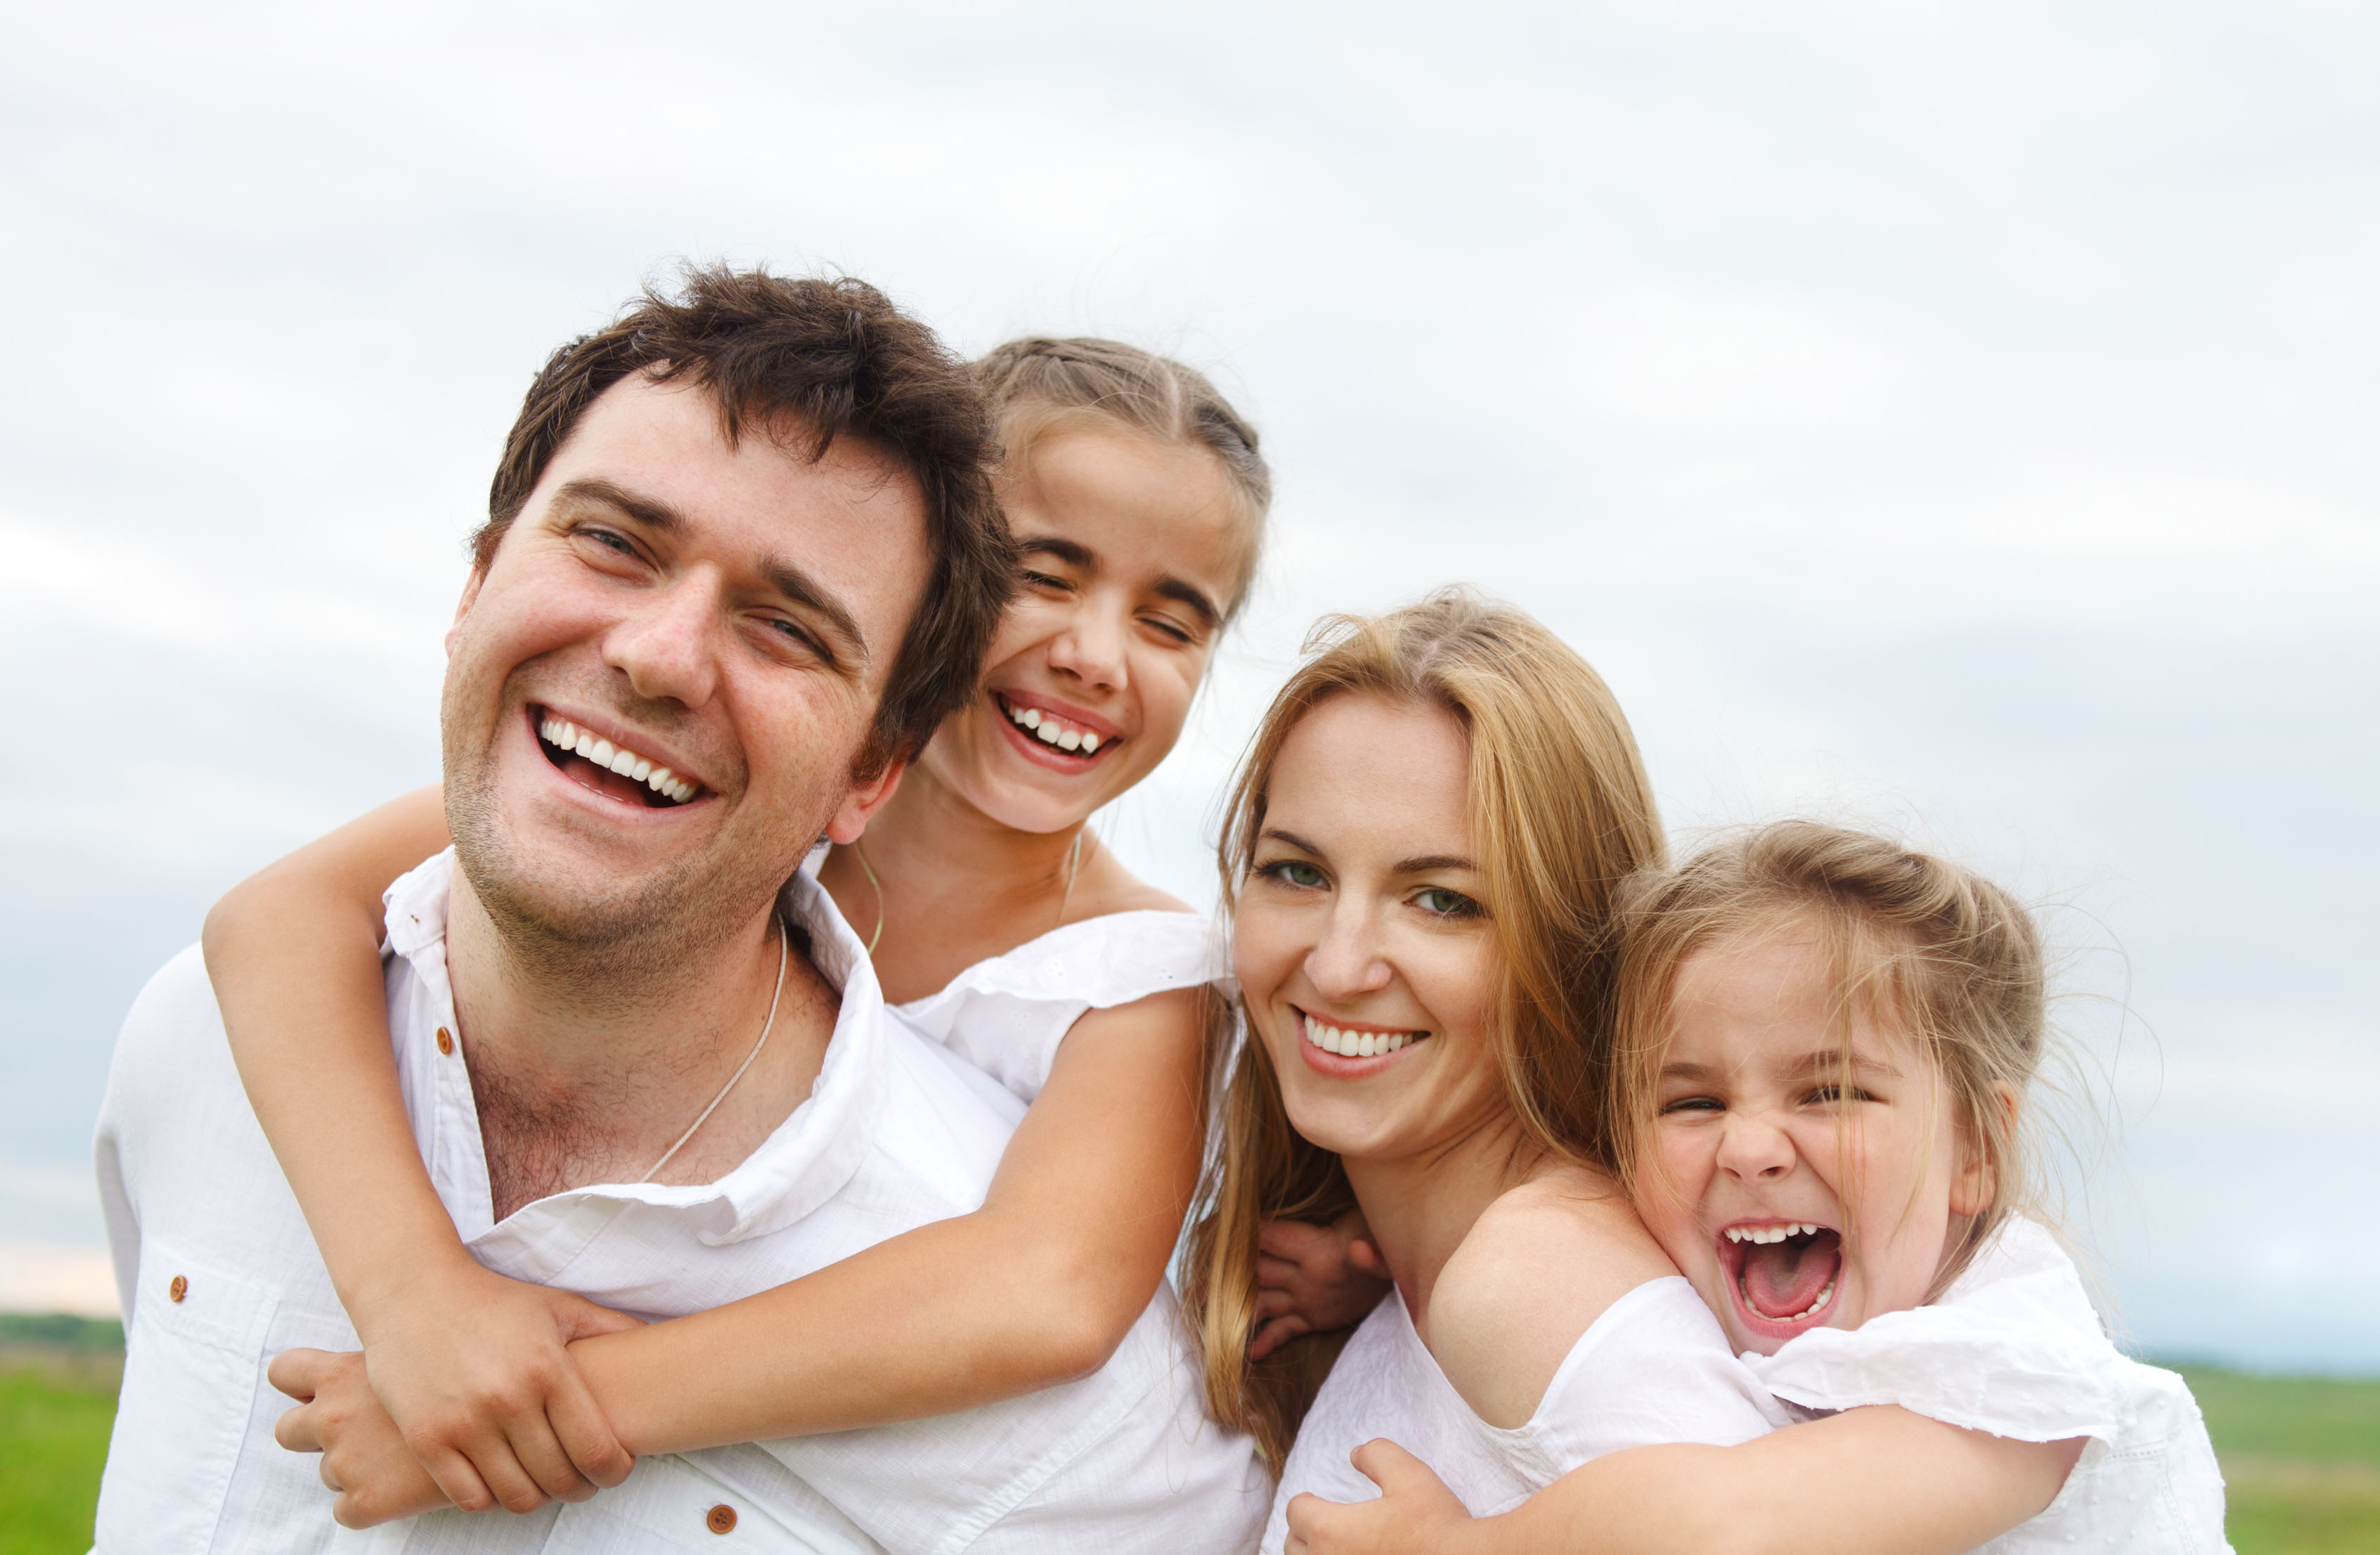 Happy Family Images | Free | Download